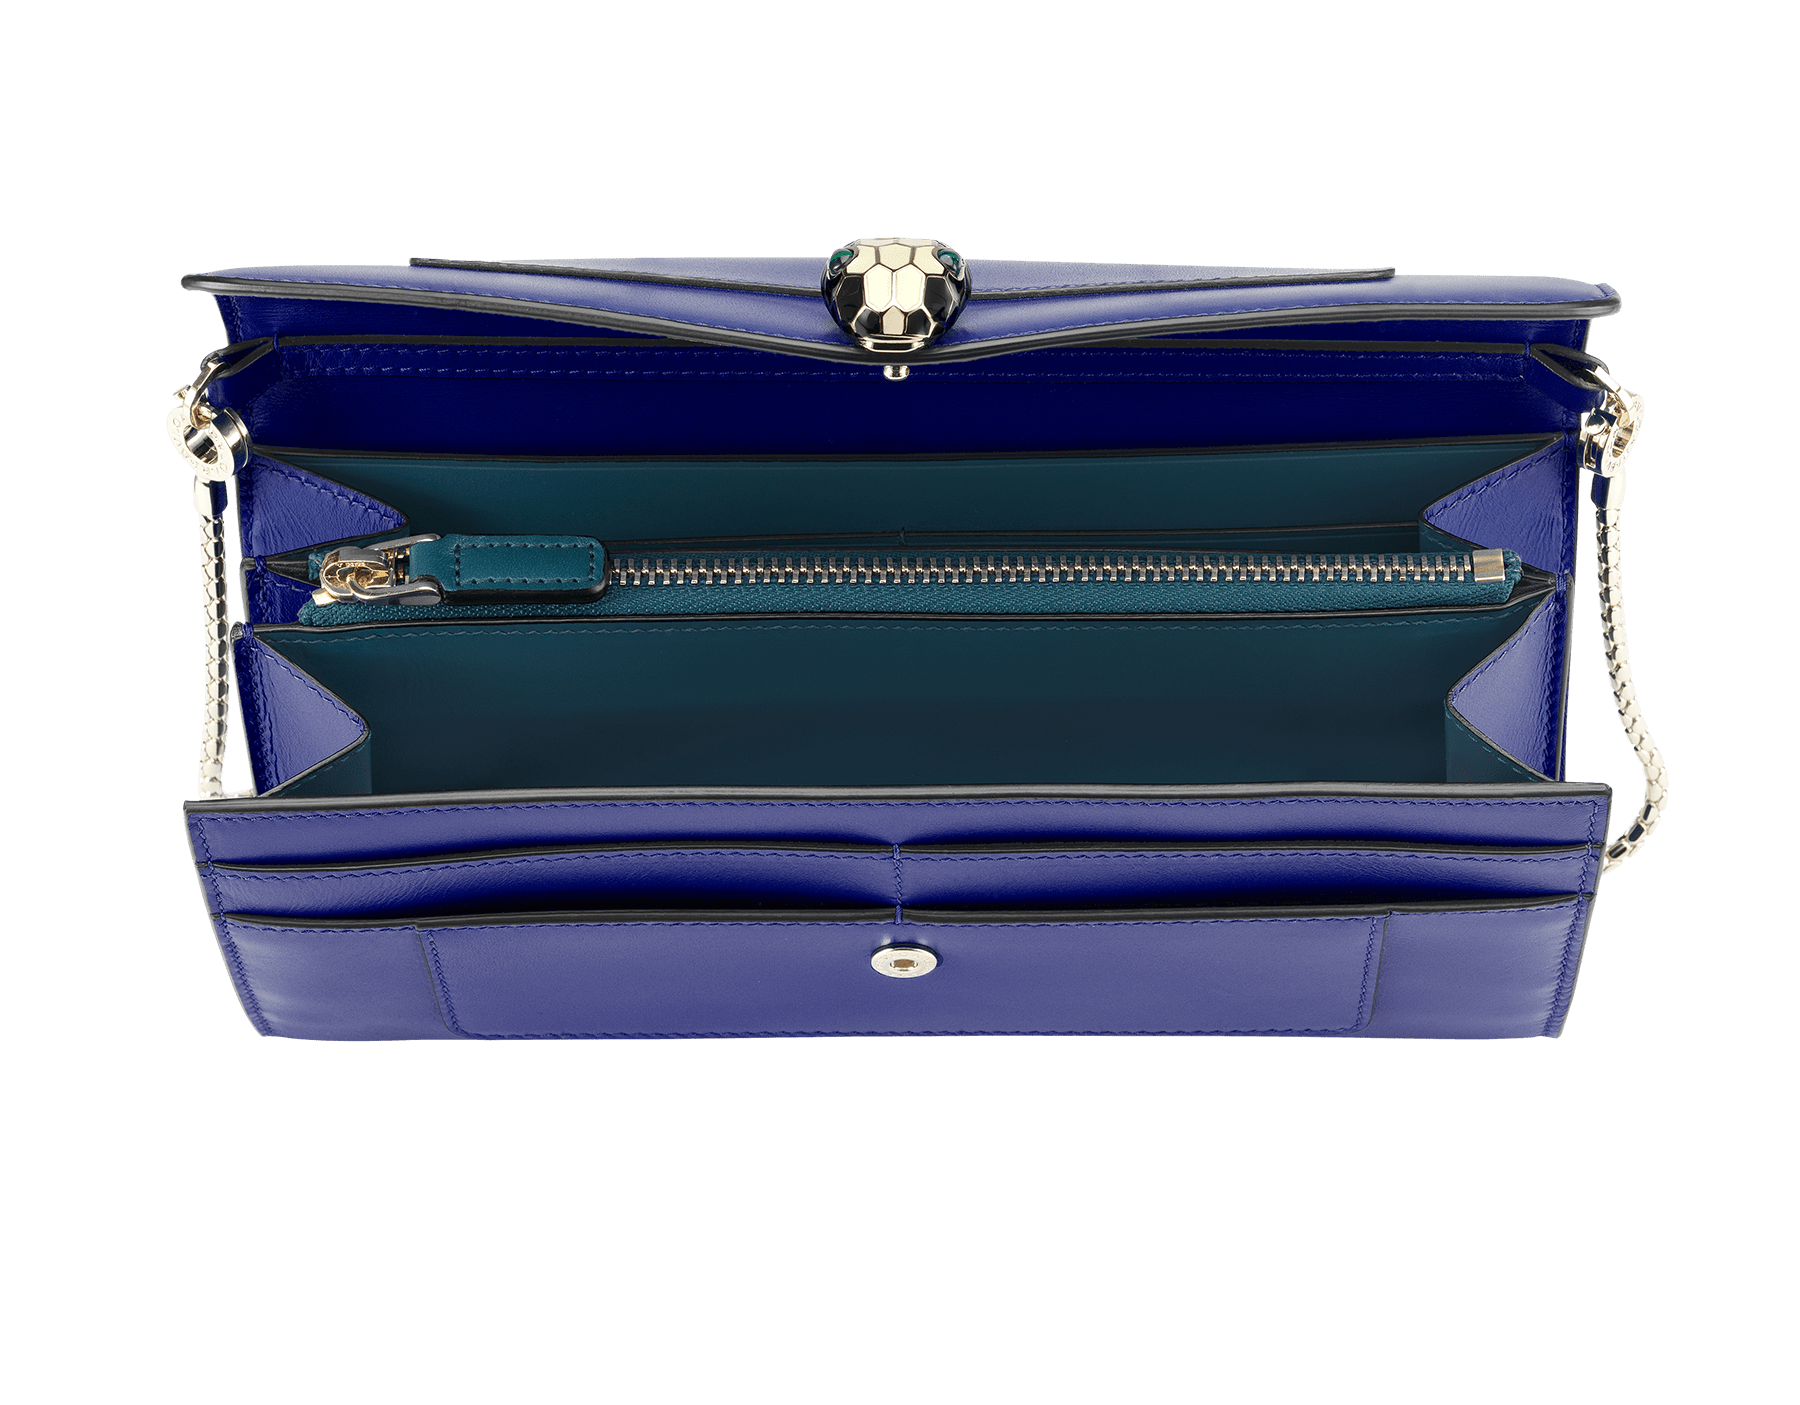 Wallet pouch in royal sapphire and teal topaz calf leather, with plum amethyst nappa lining. Brass light gold plated hardware and removable snake body shaped short chain. Two gussets, sixteen credit card slots, one bill compartment and one zipped pocket in the middle. Brass light gold plated Serpenti head stud closure in black and white enamel with malachite eyes. Also available in other colours. 19 x 10 cm. - 7.5 x 3.9 281316 image 2